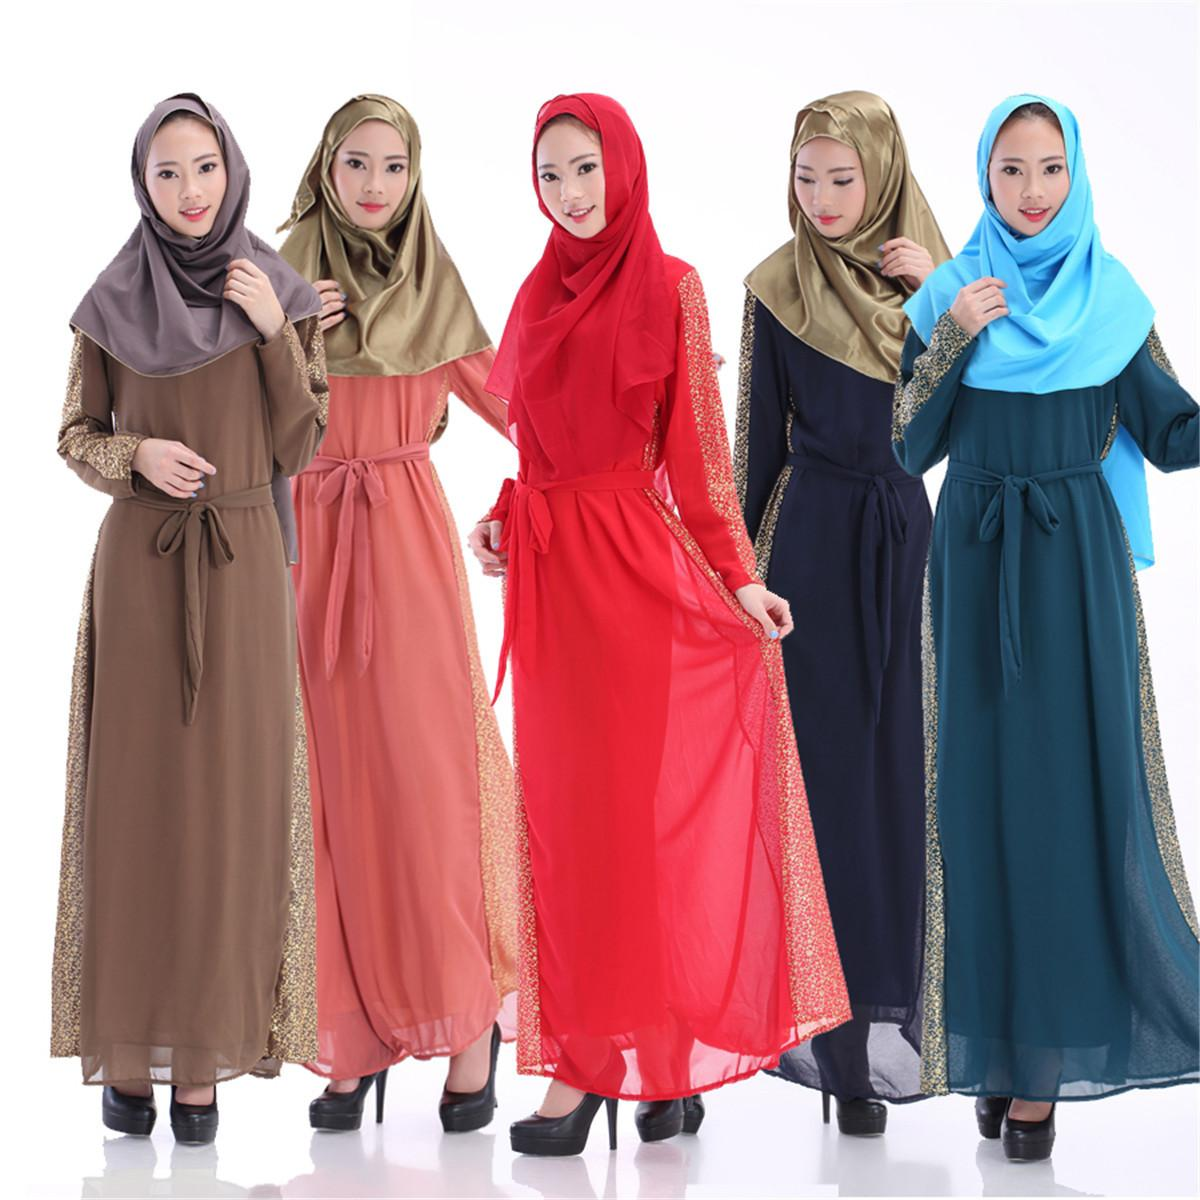 17fcdd364e2 2016 Fashion Muslim Dridesmaid Dresses Sequins Arab Women Robes Long  Sleeves Islamic Ethnic Clothing Middle East Casual Dress E302J Pink  Cocktail Dresses ...